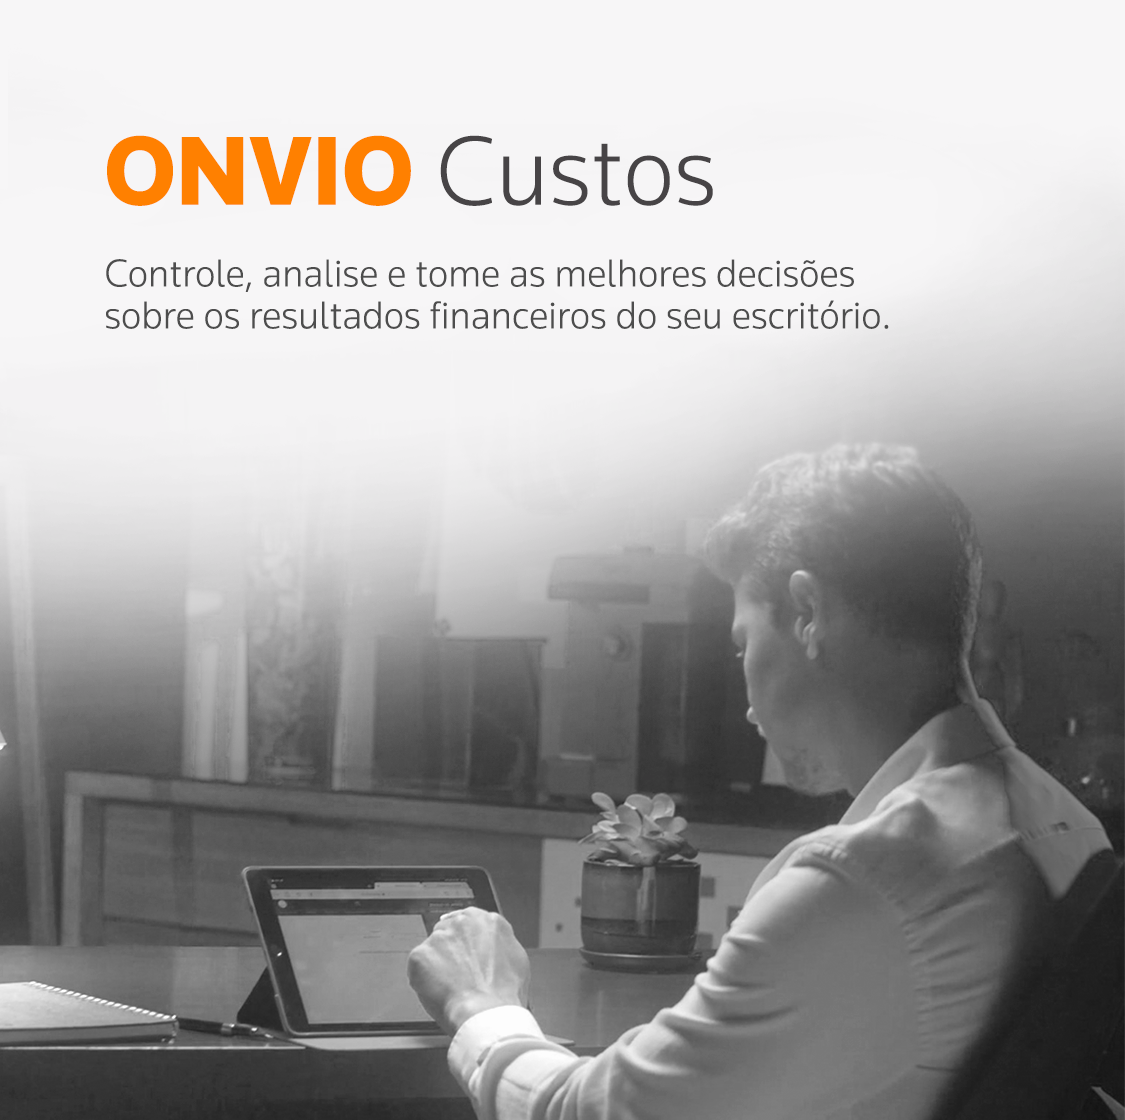 Thomson Reuters - Onvio